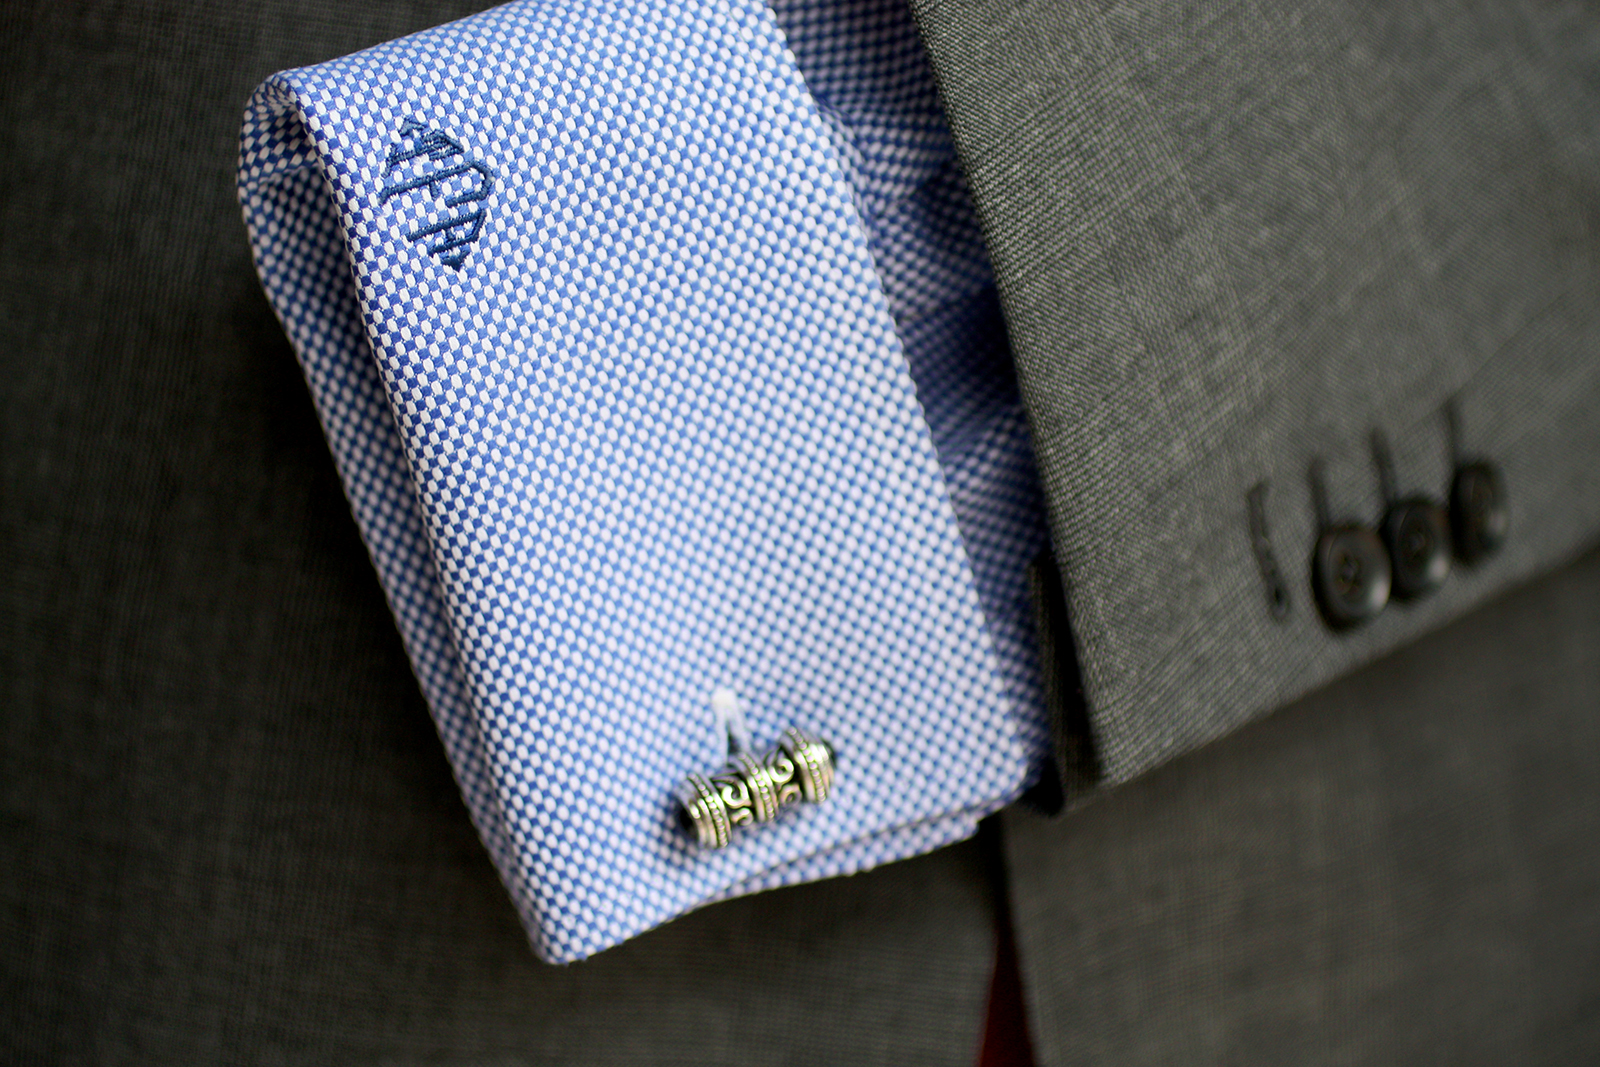 for Initials on dress shirts